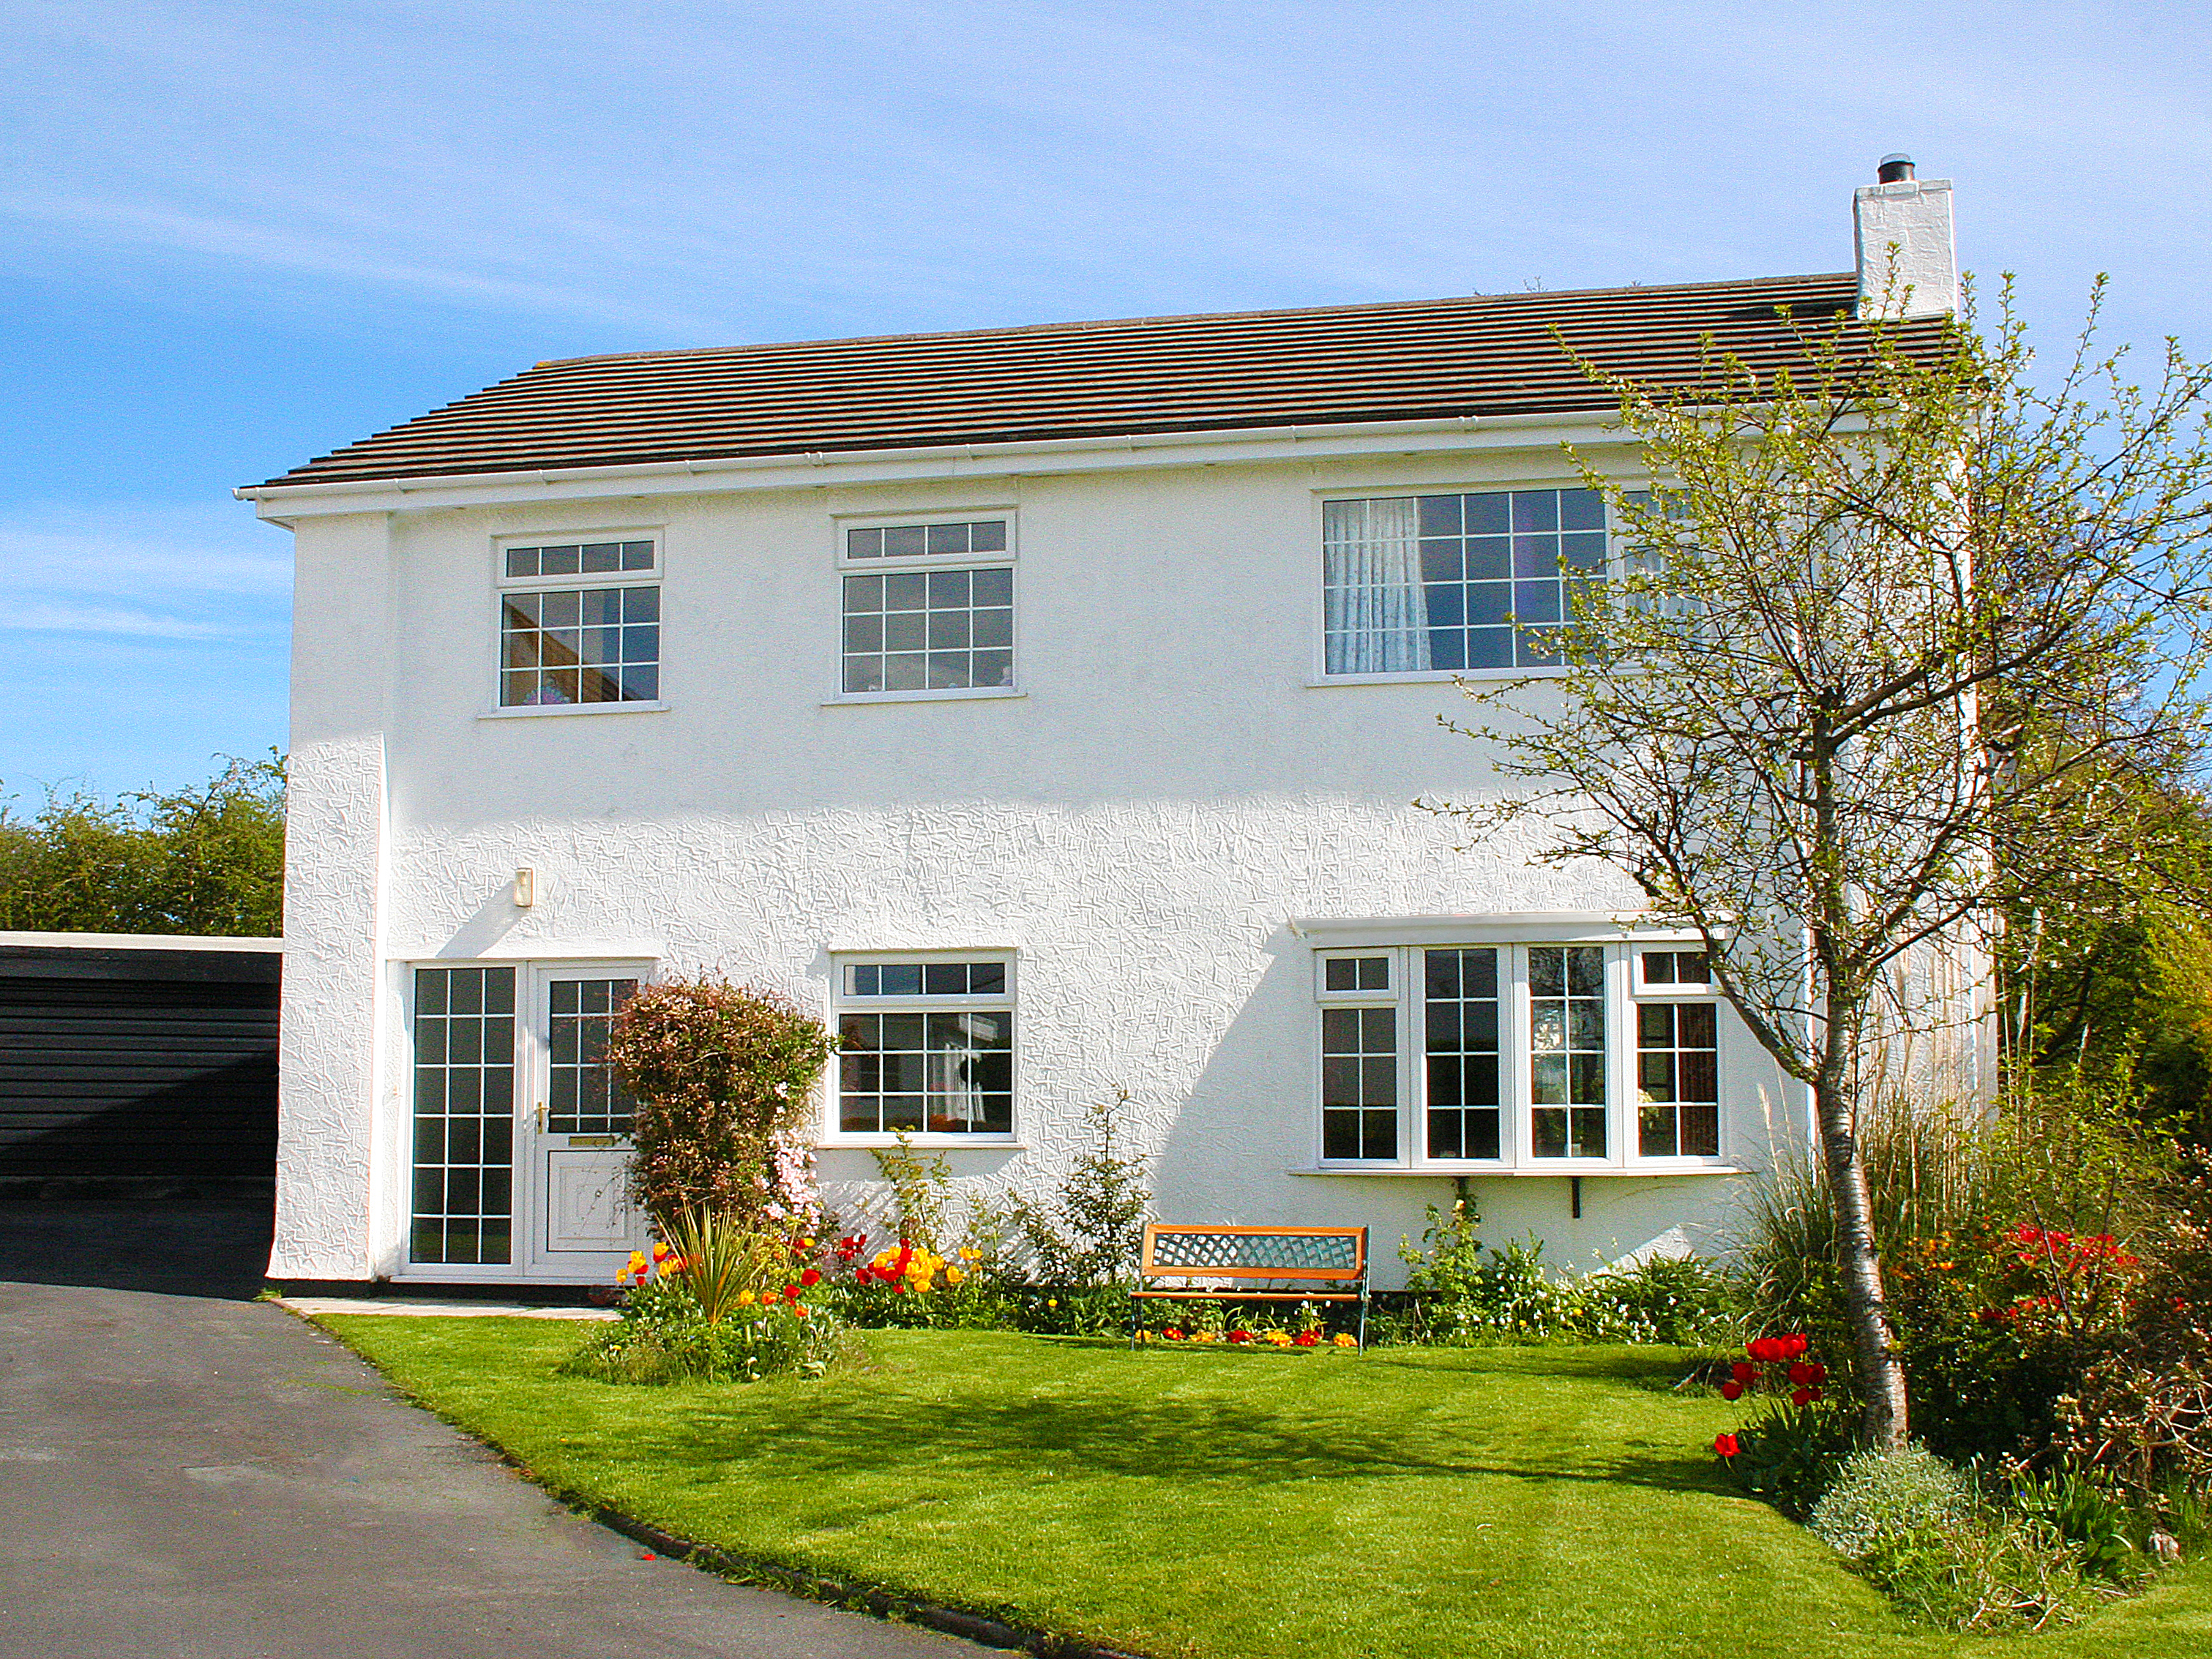 4 bedroom Cottage for rent in Beaumaris